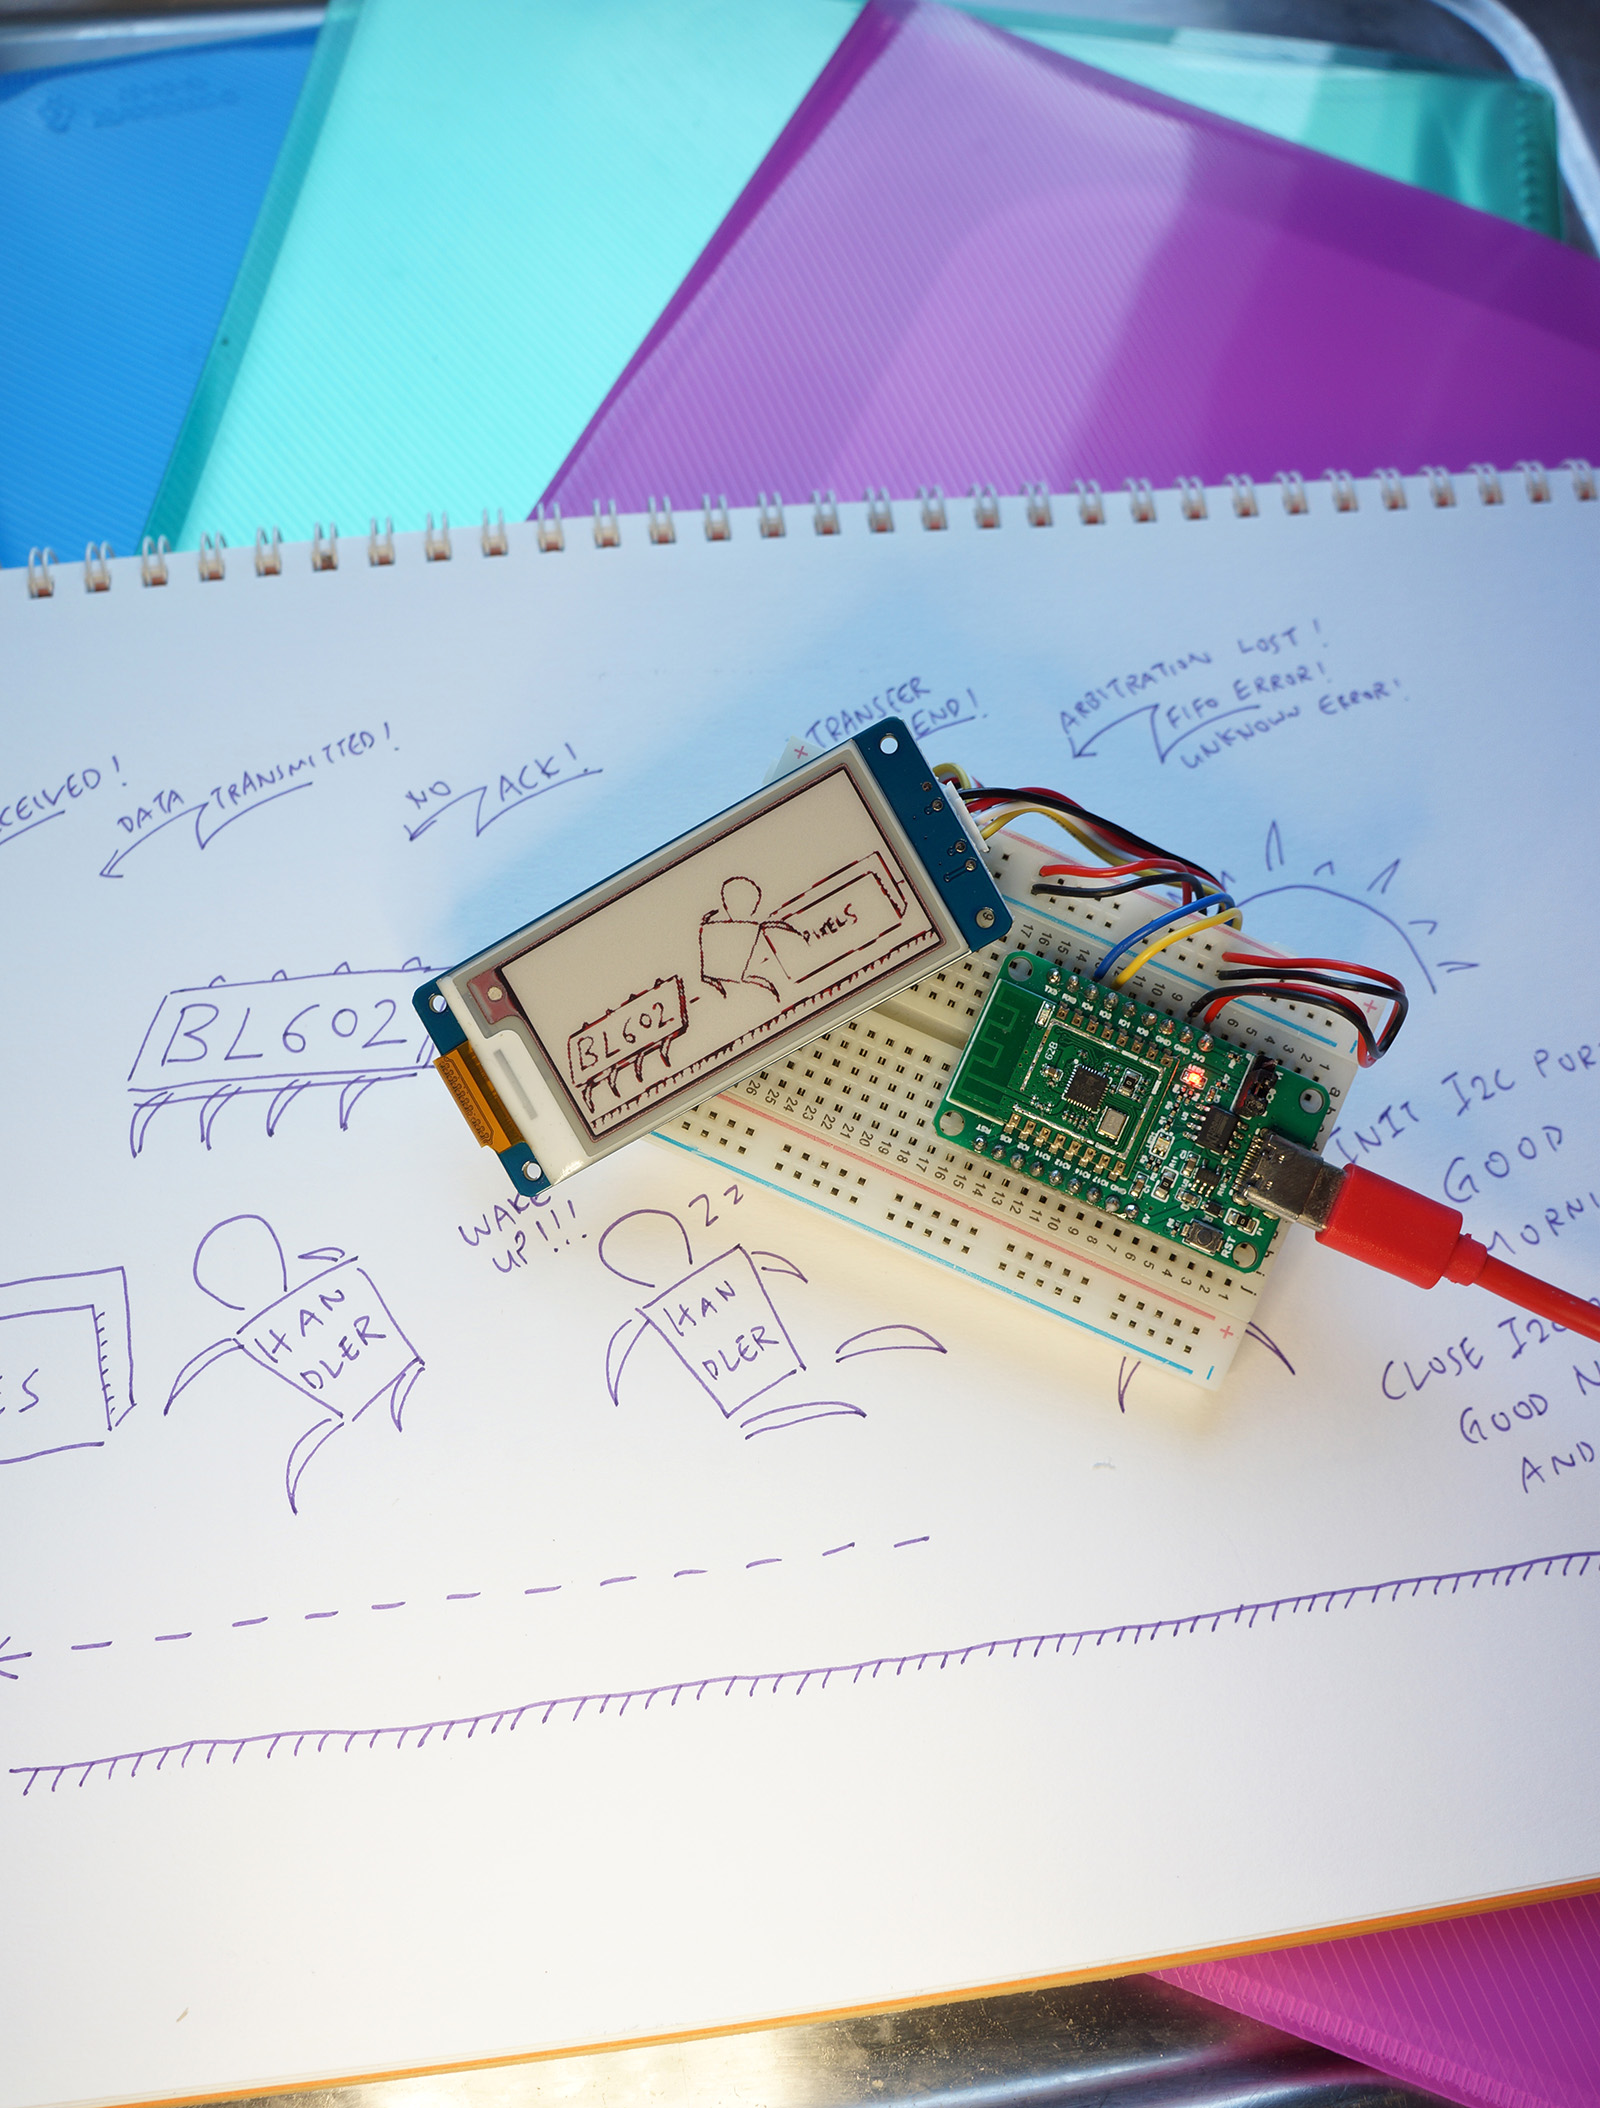 PineCone BL602 RISC-V Board with Grove E-Ink Display